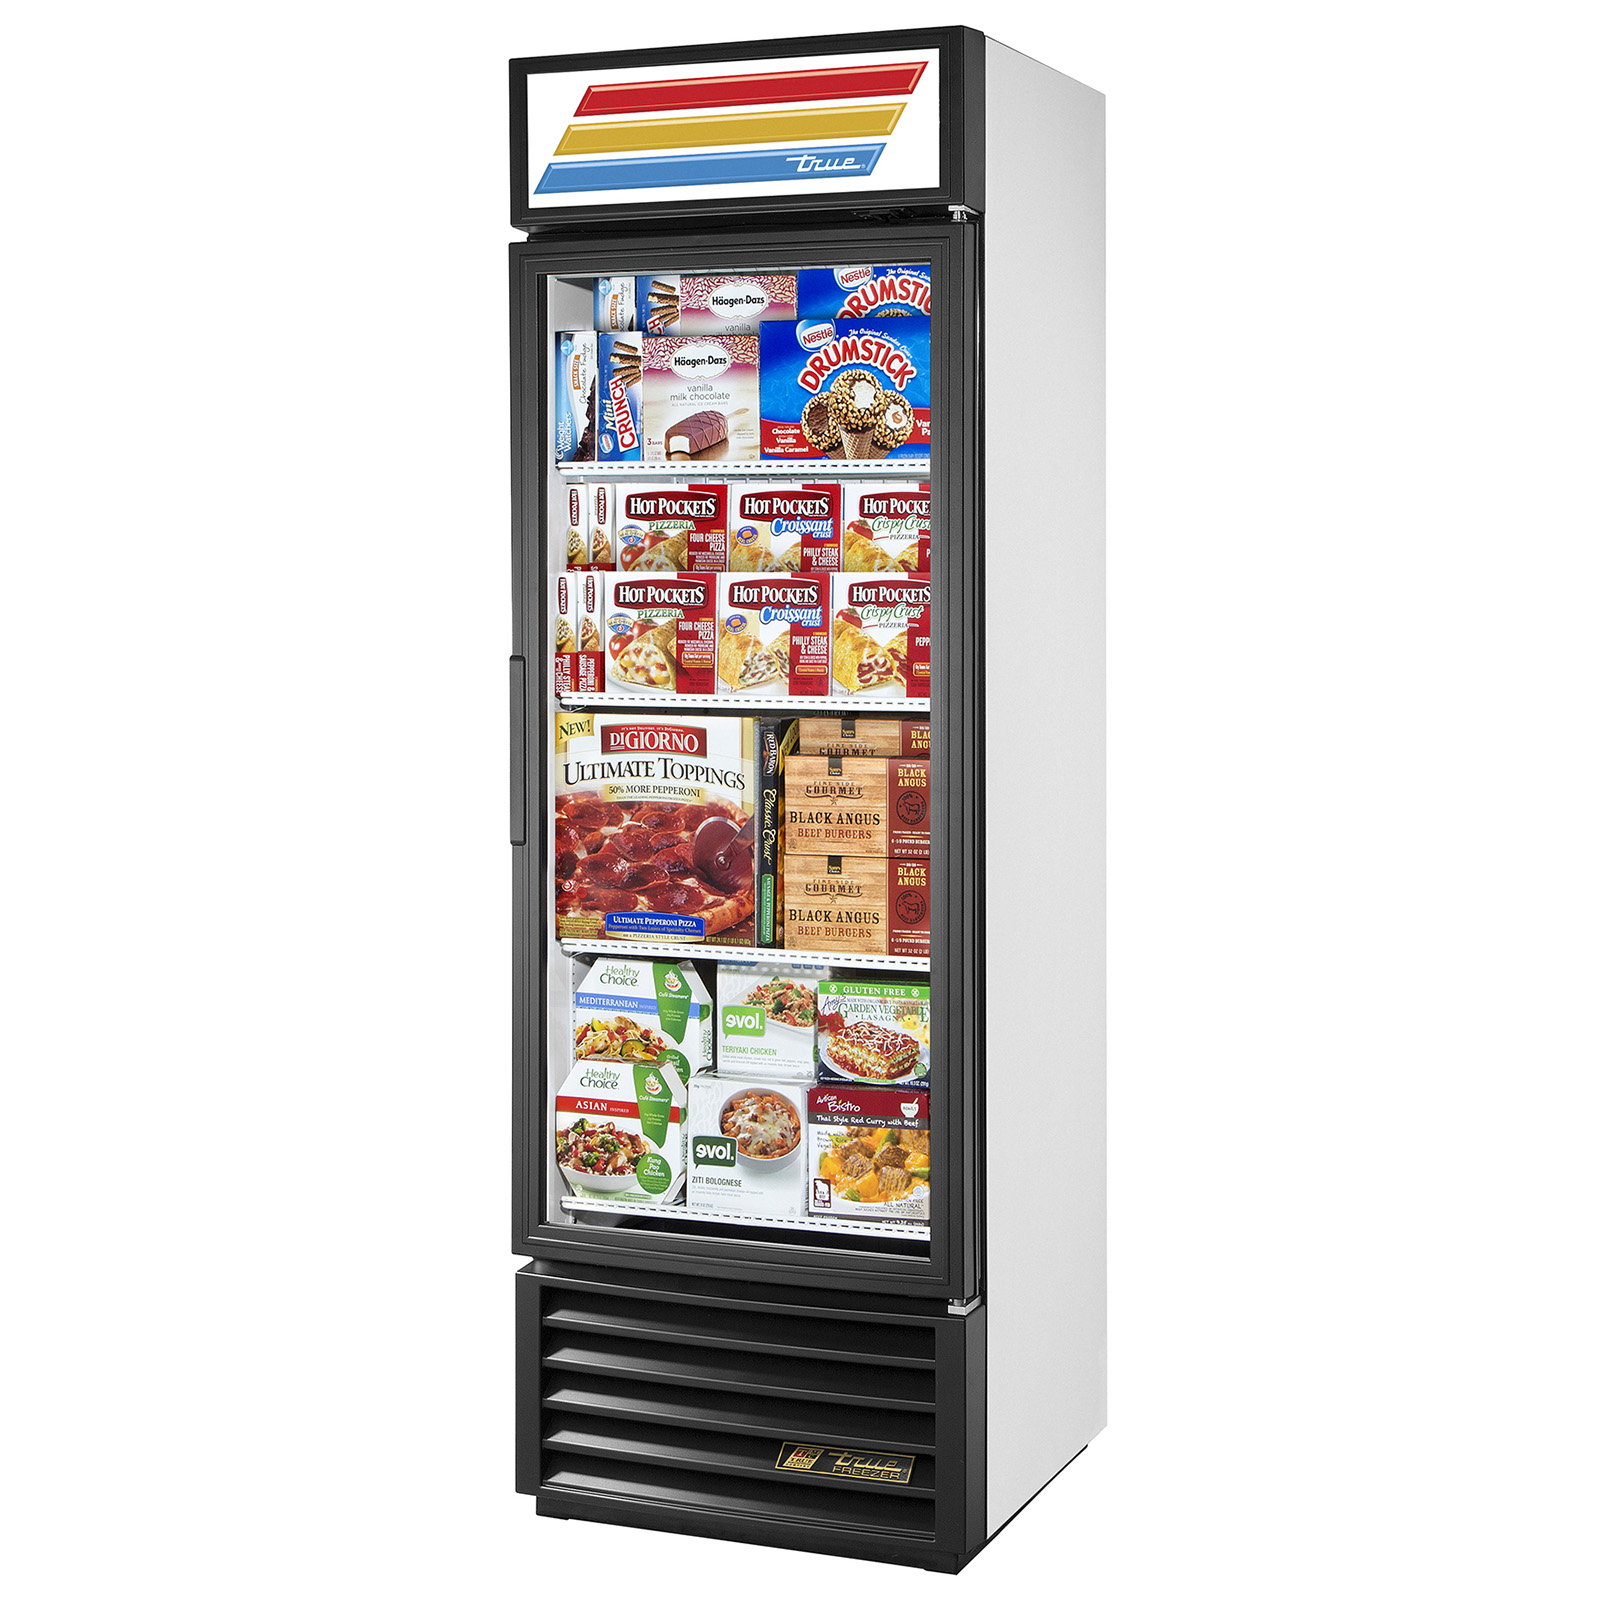 GDM-19T-F-LD True - Freezer Merchandiser one-section